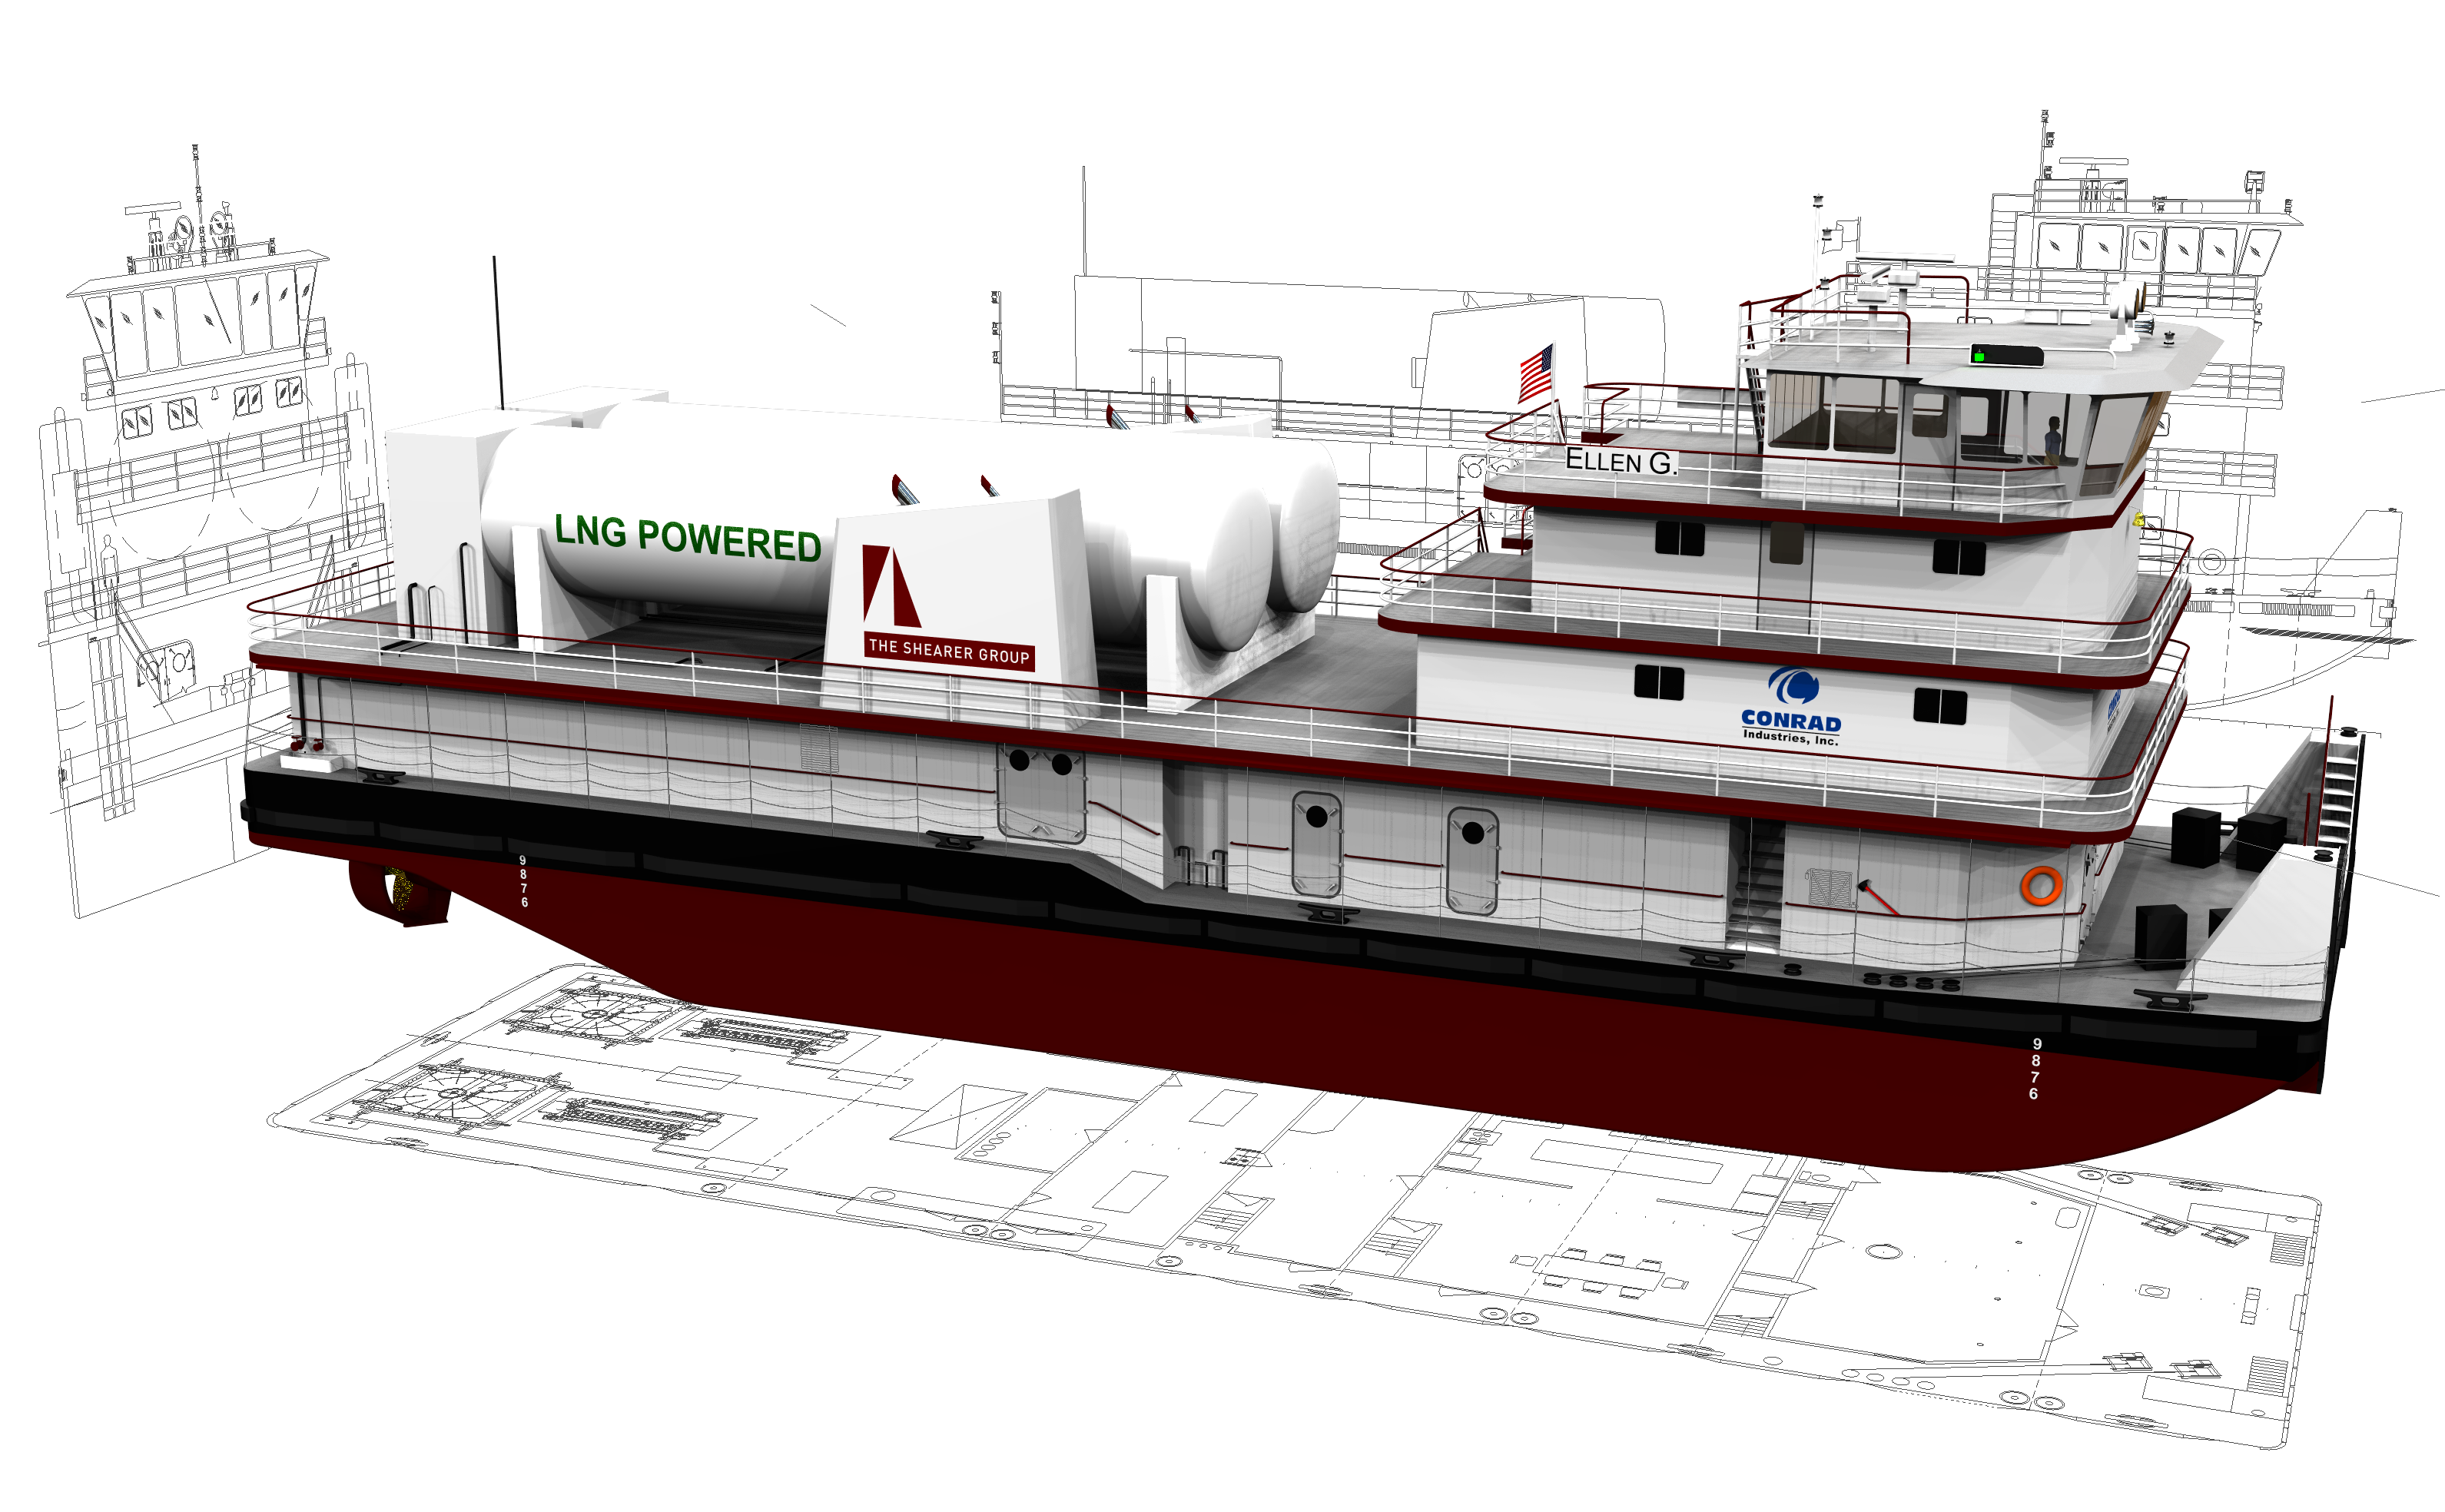 marine-news-article-about-abs-approved-lng-towboat-1